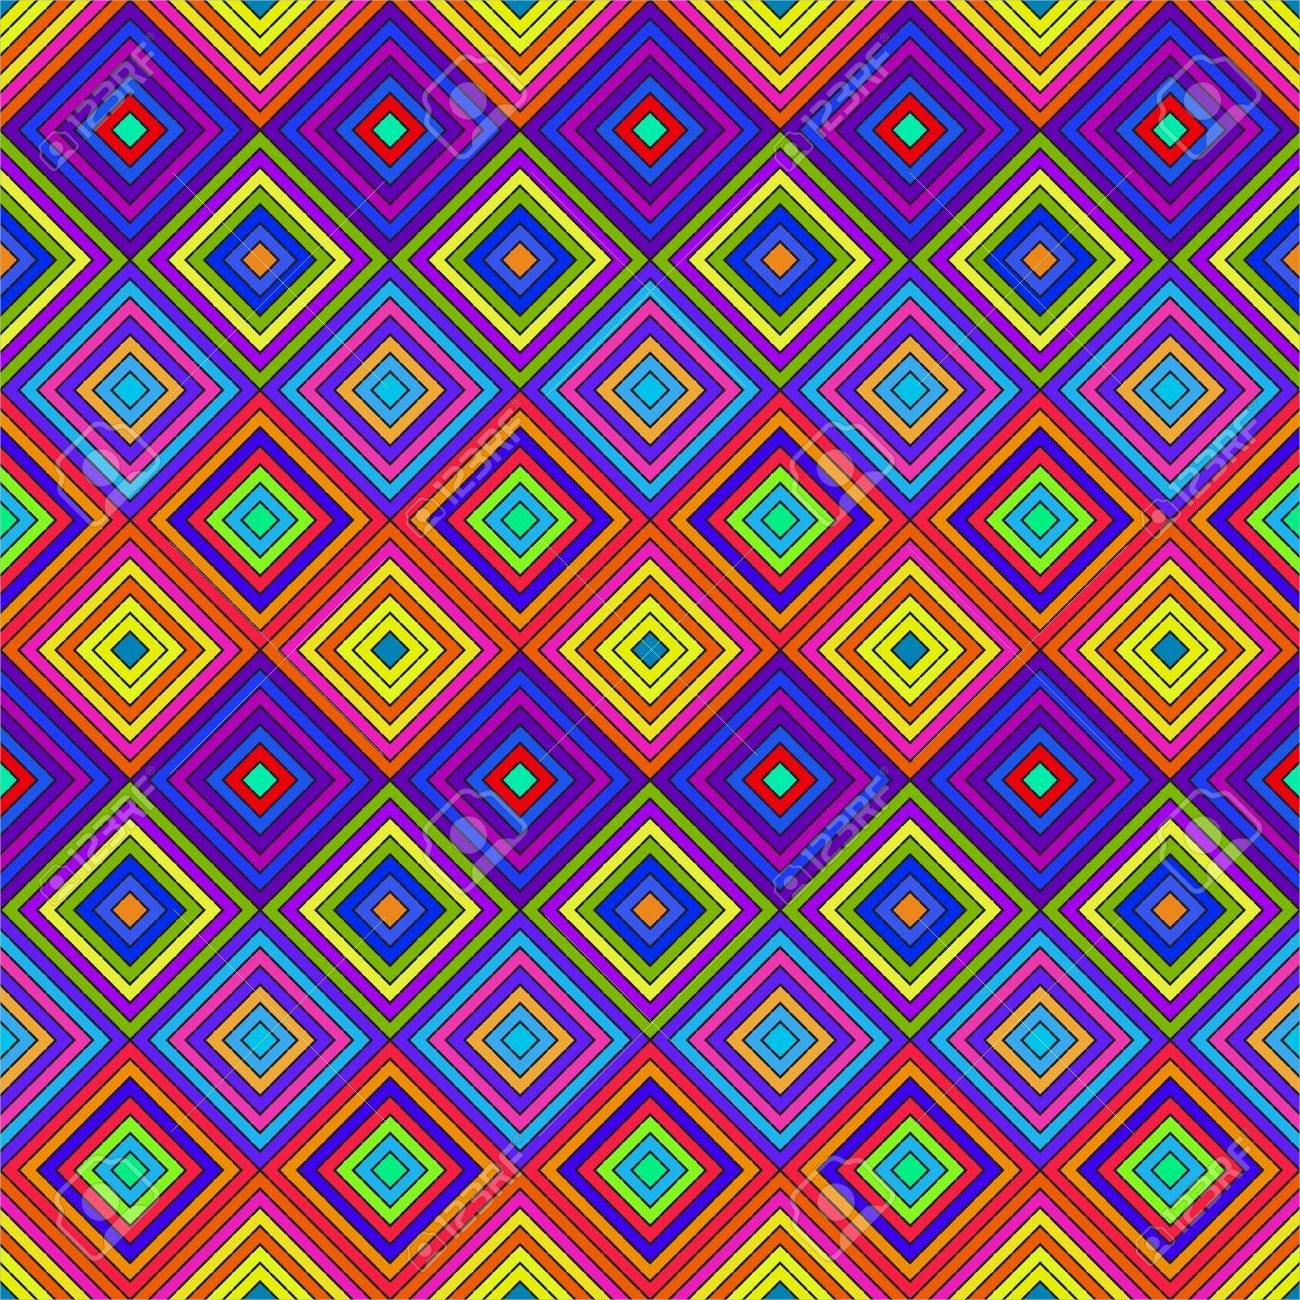 colorful trippy pattern